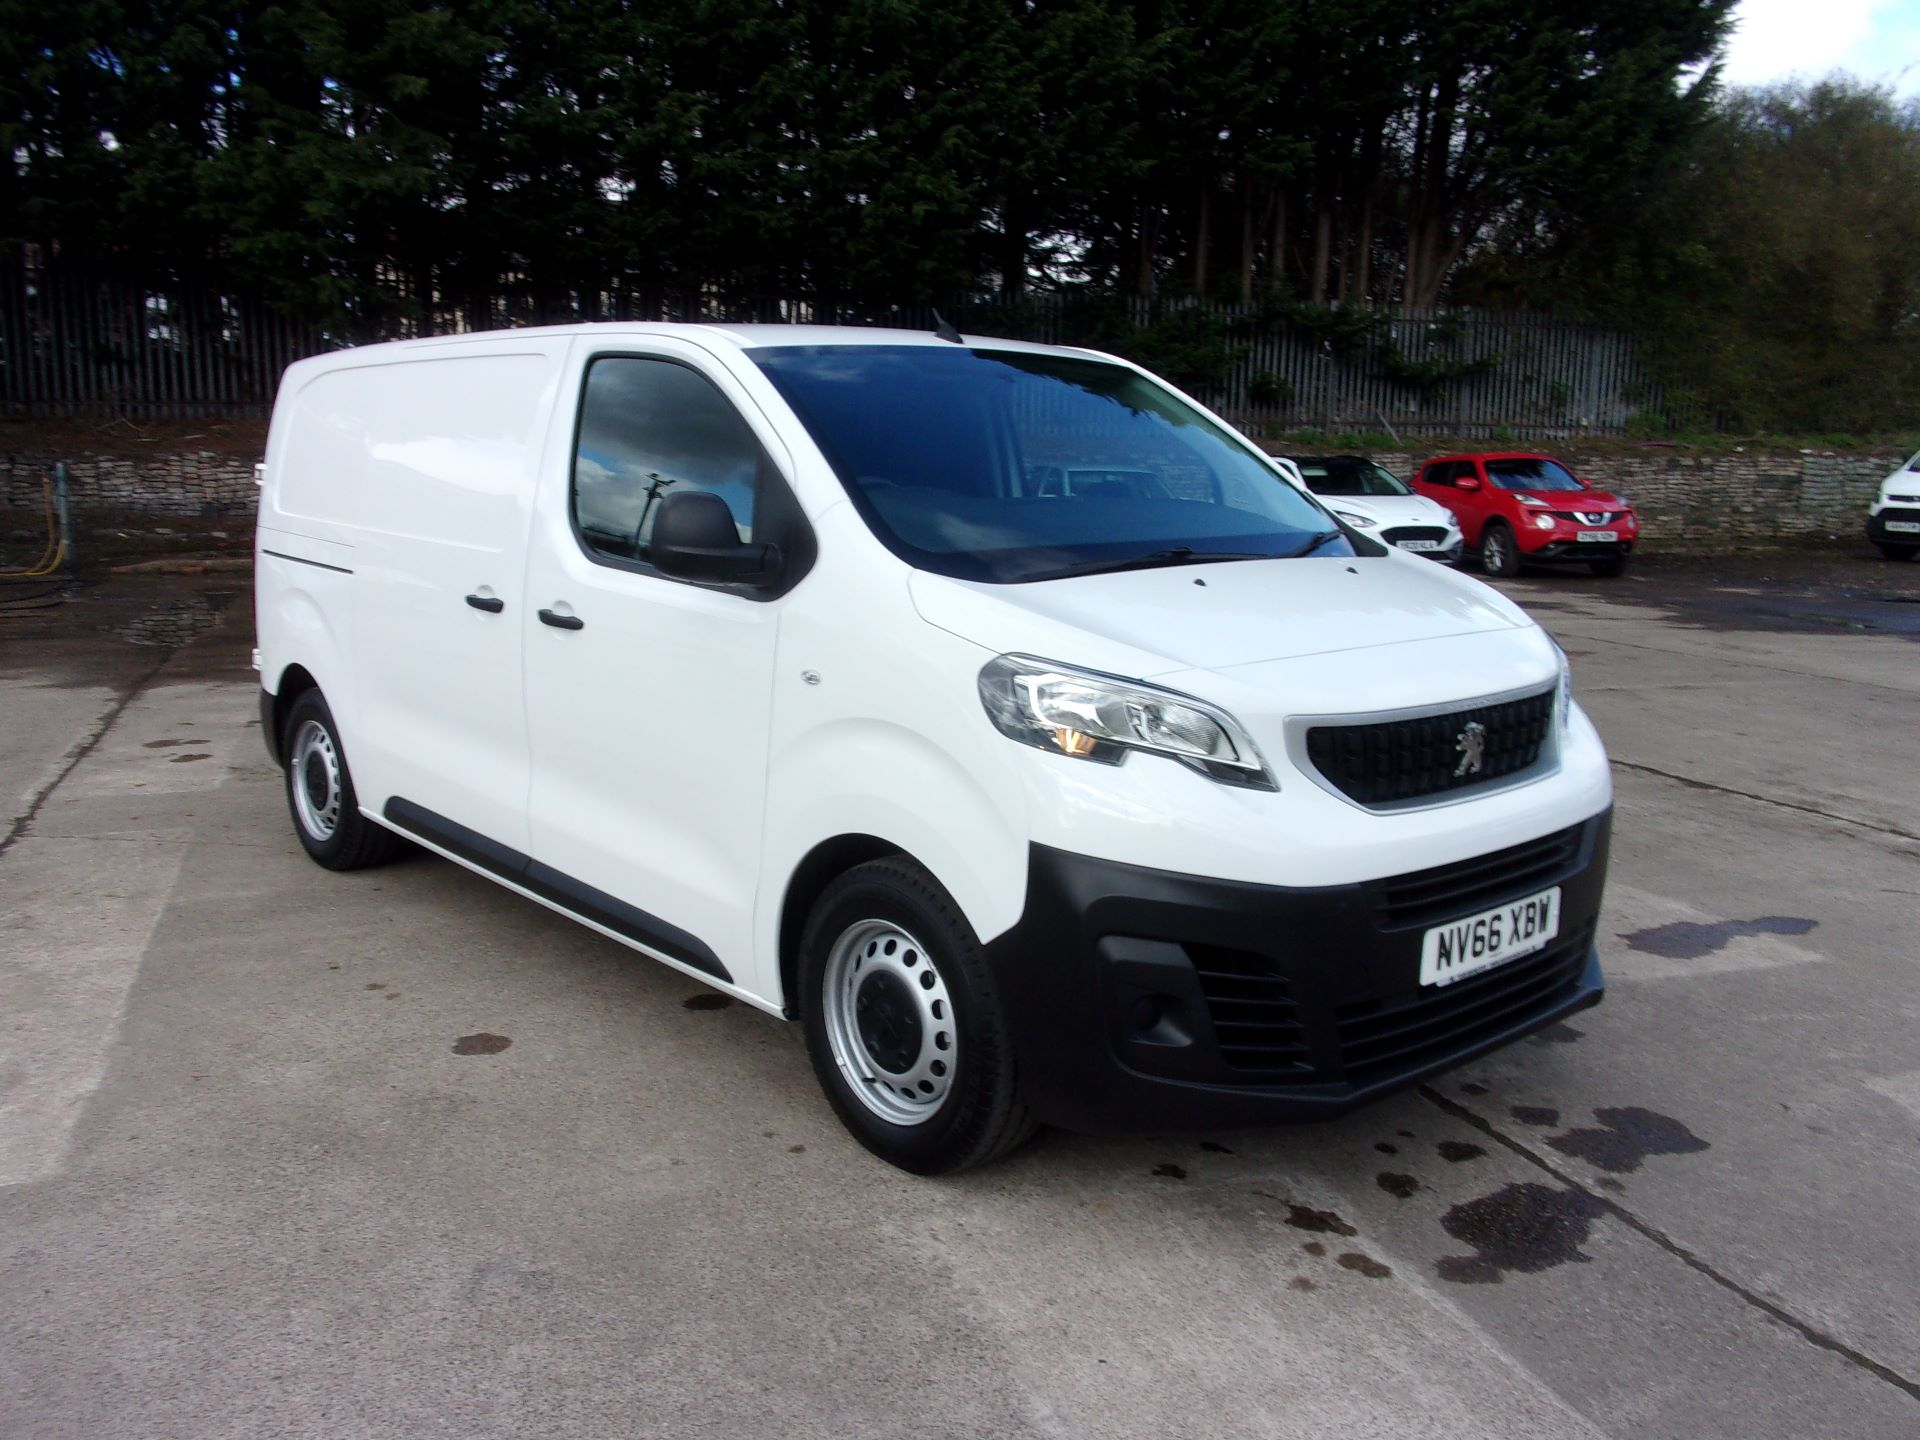 2017 Peugeot Expert STANDARD 1000 1.6 BLUEHDI 95 PS S EURO 6 (NV66XBW)